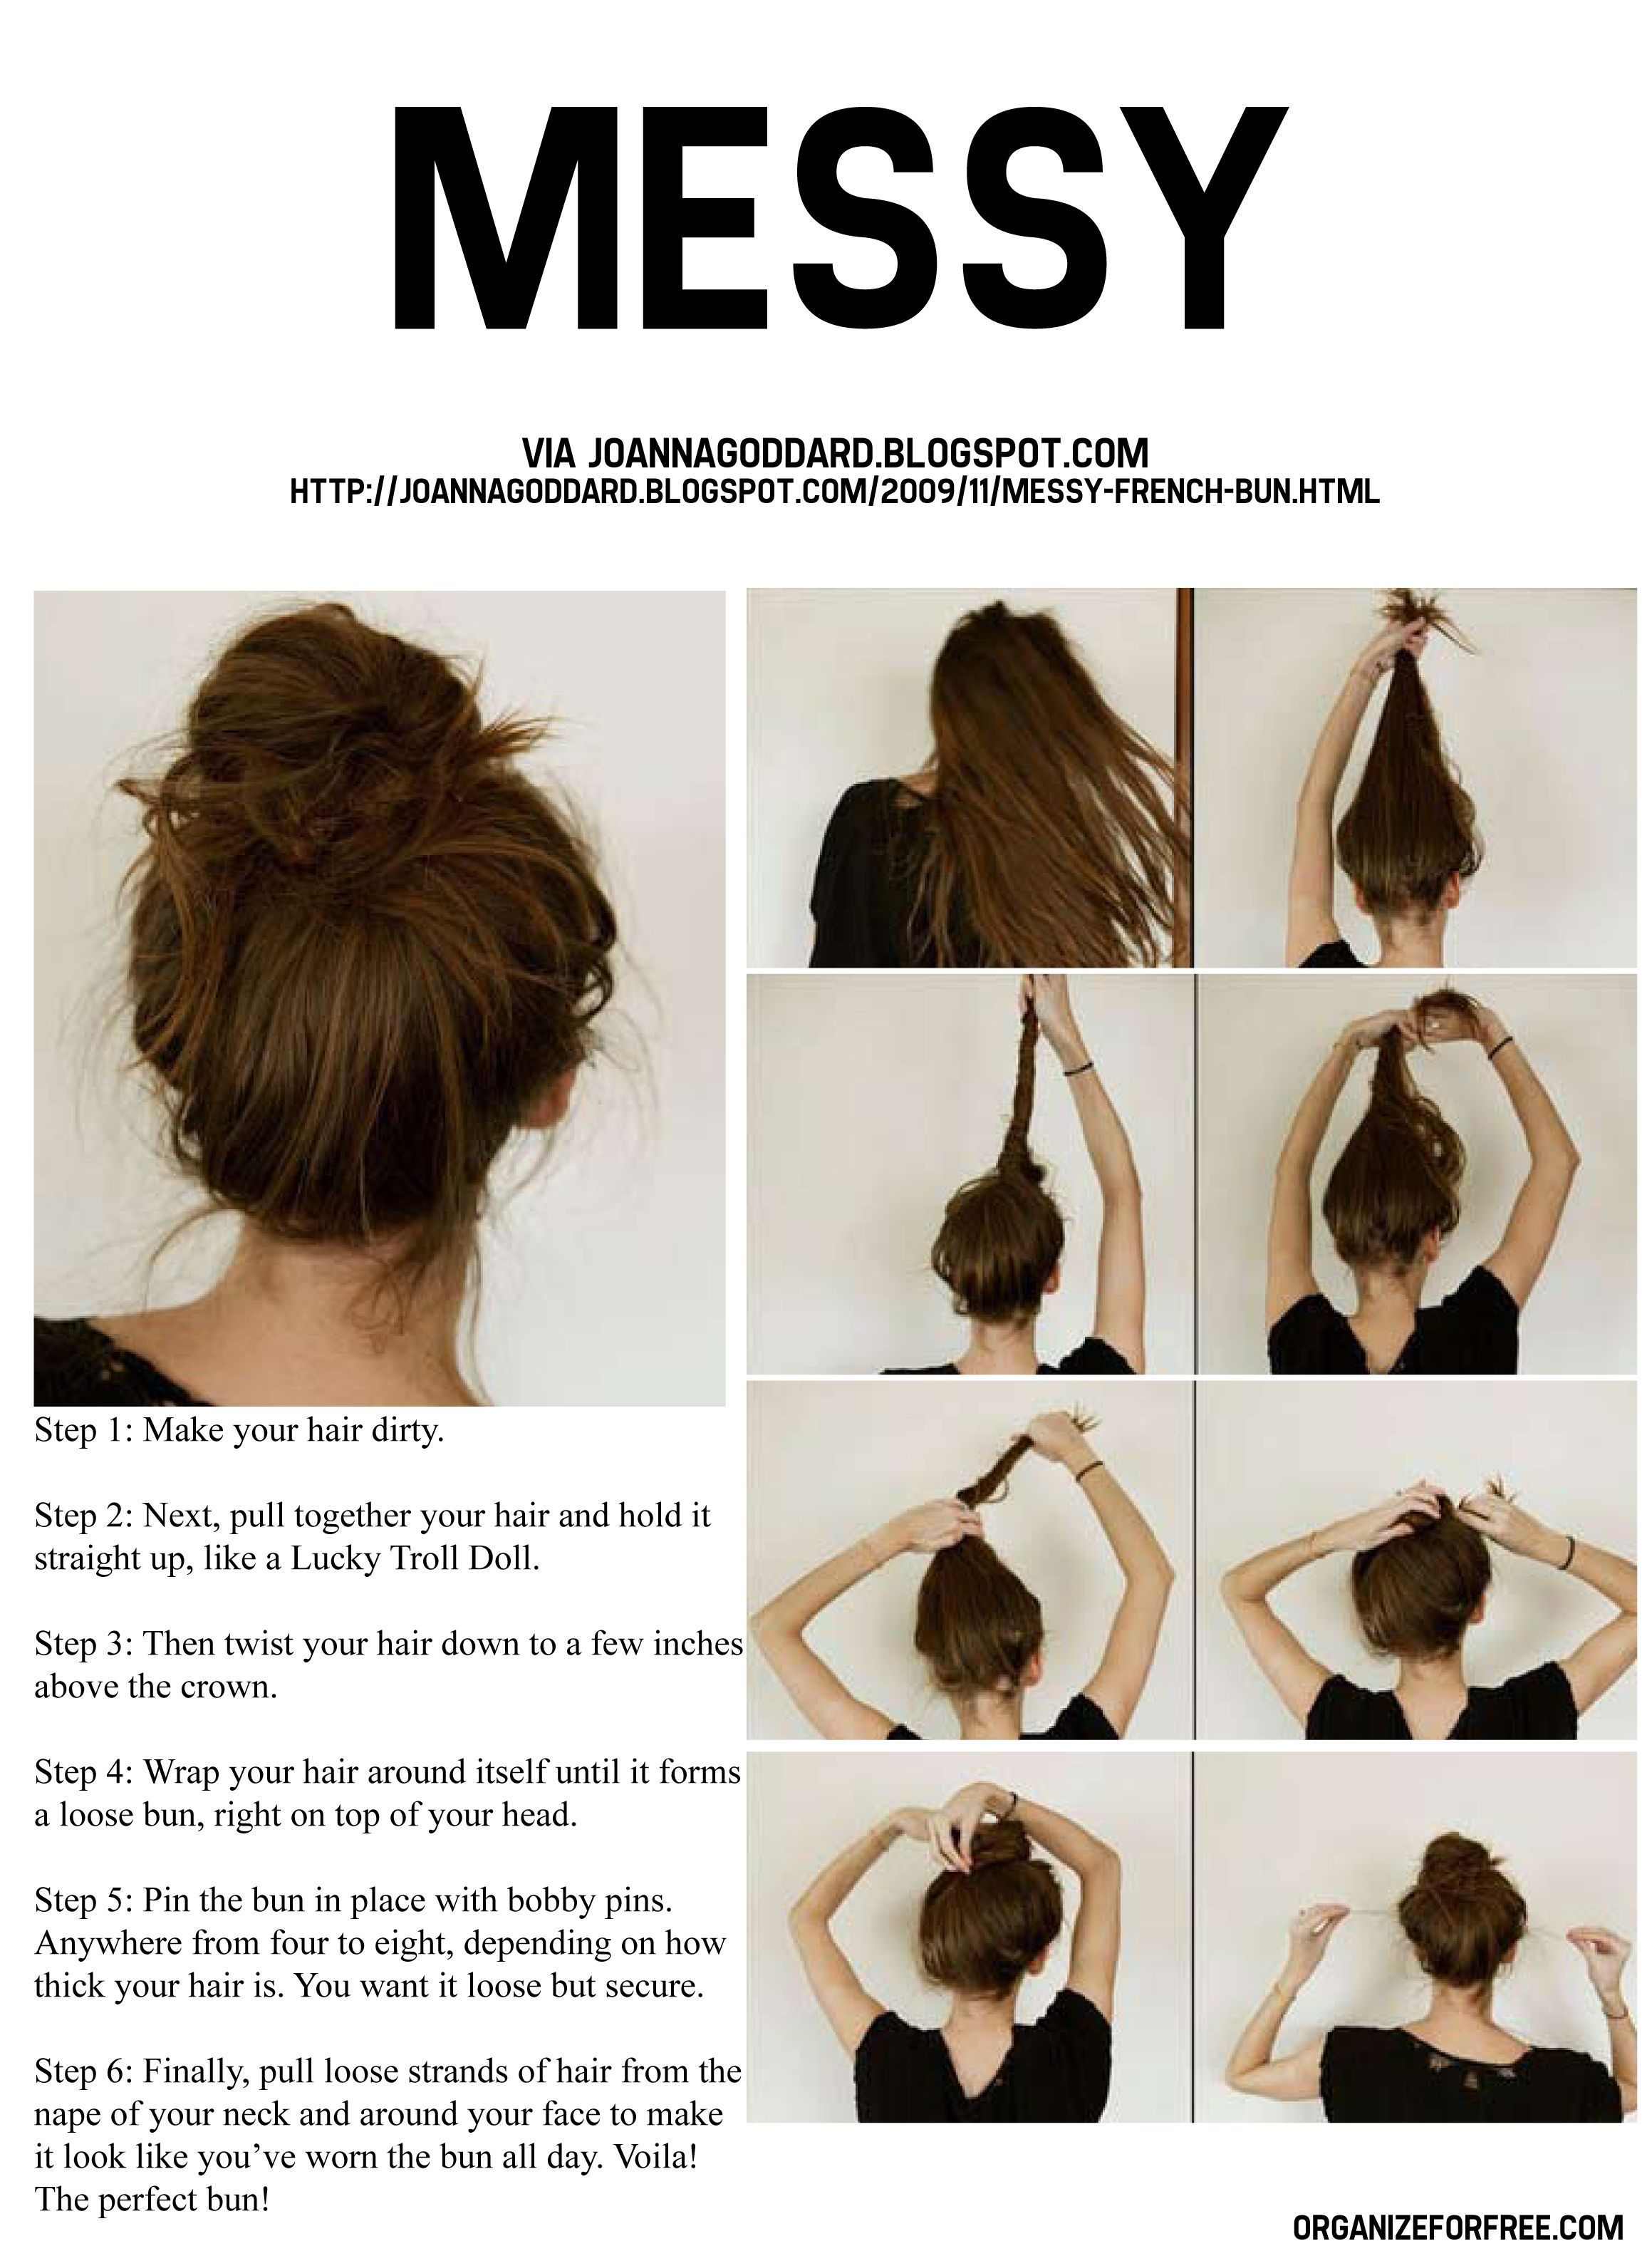 Easy Hairstyles Quick Lazy Girl Messy Buns Hairstyles Easy Quick Lazy Hair In 2020 Hair Styles Easy Hairstyles For Long Hair Long Hair Styles